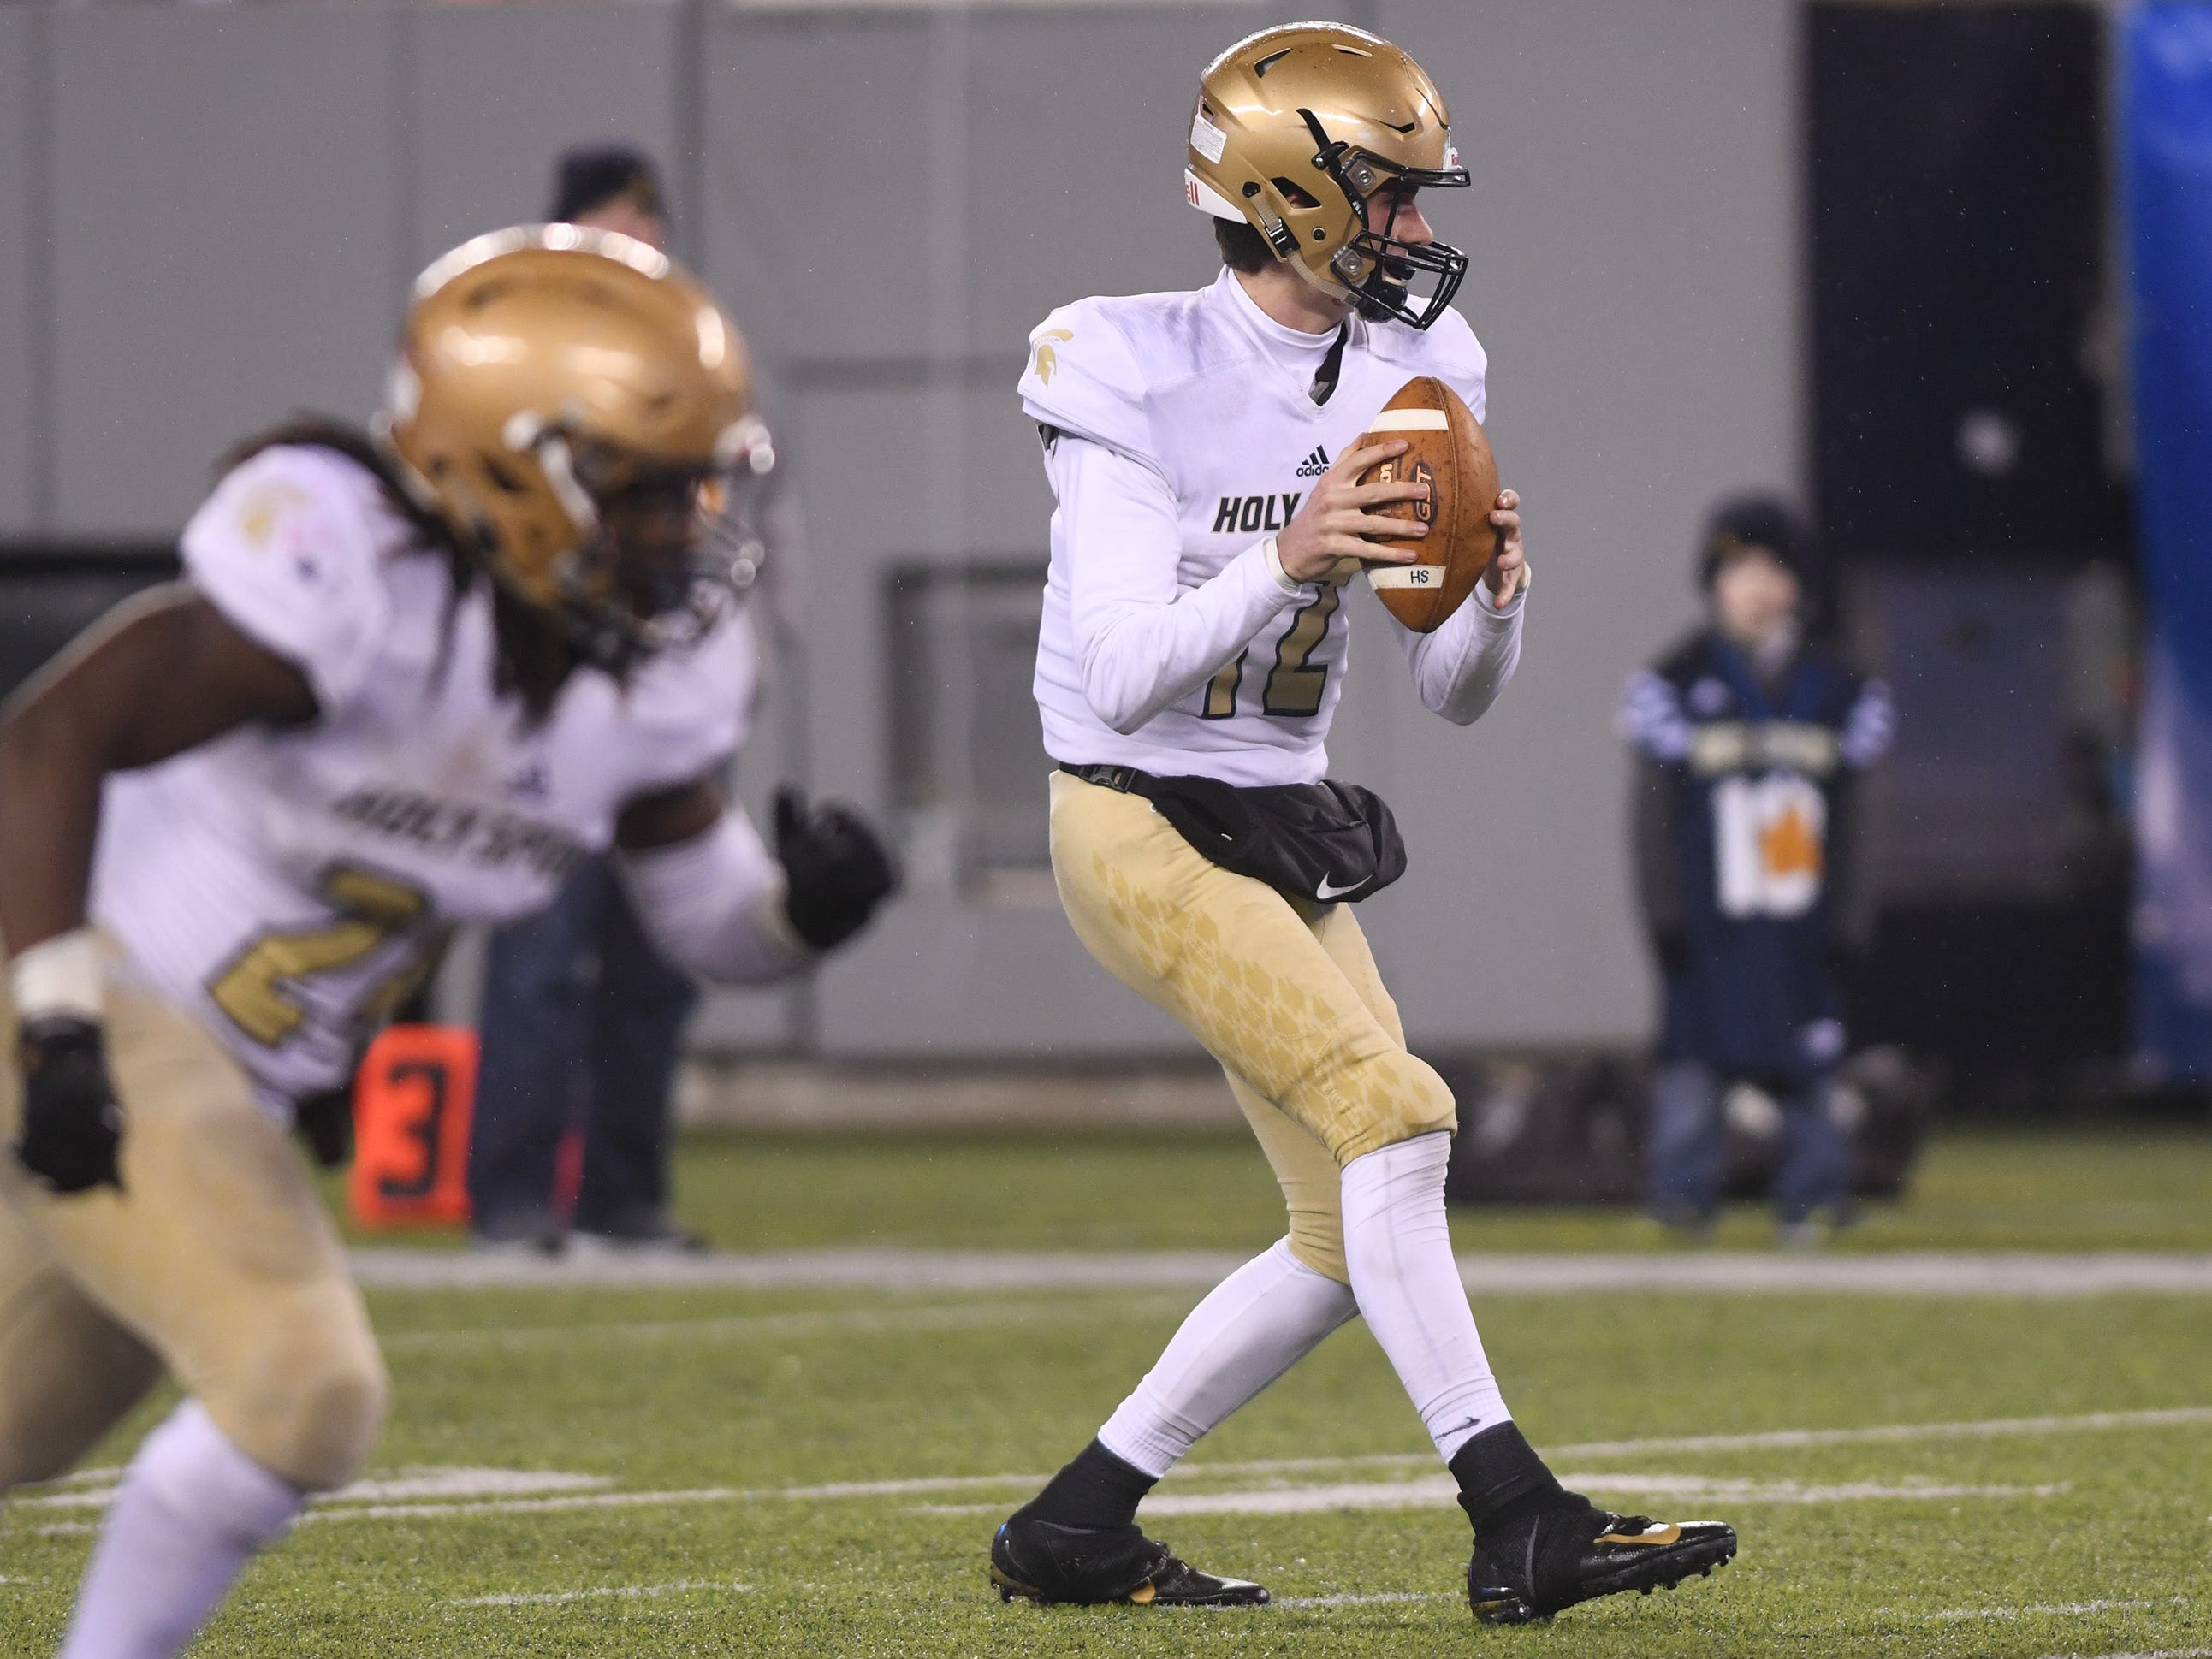 Holy Spirit's QB, Ryan Yost looks for a open receiver during a game against St. Joseph. The Wildcats defeated the Spartans, 41-22 at MetLife Stadium to win the Non-Public 2 state championship.